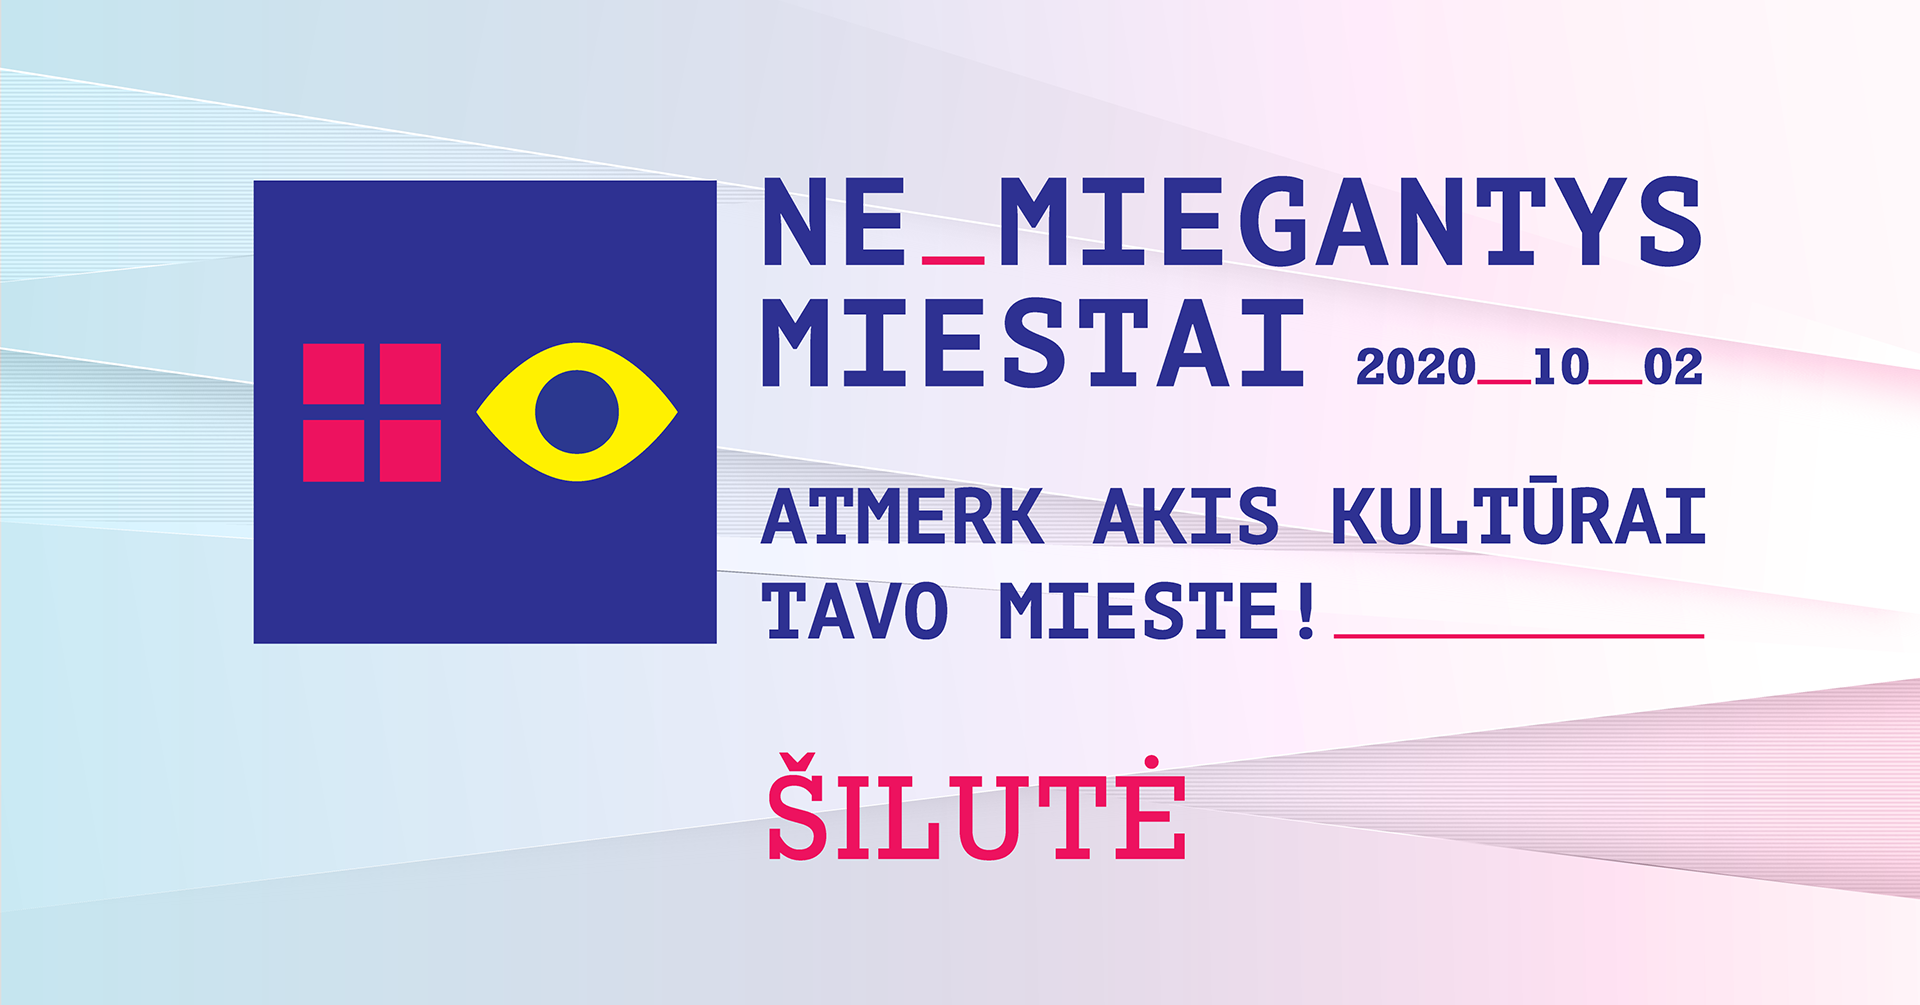 NeMiegantys Miestai FB_FB Event Cover 1920x1005px_Silute